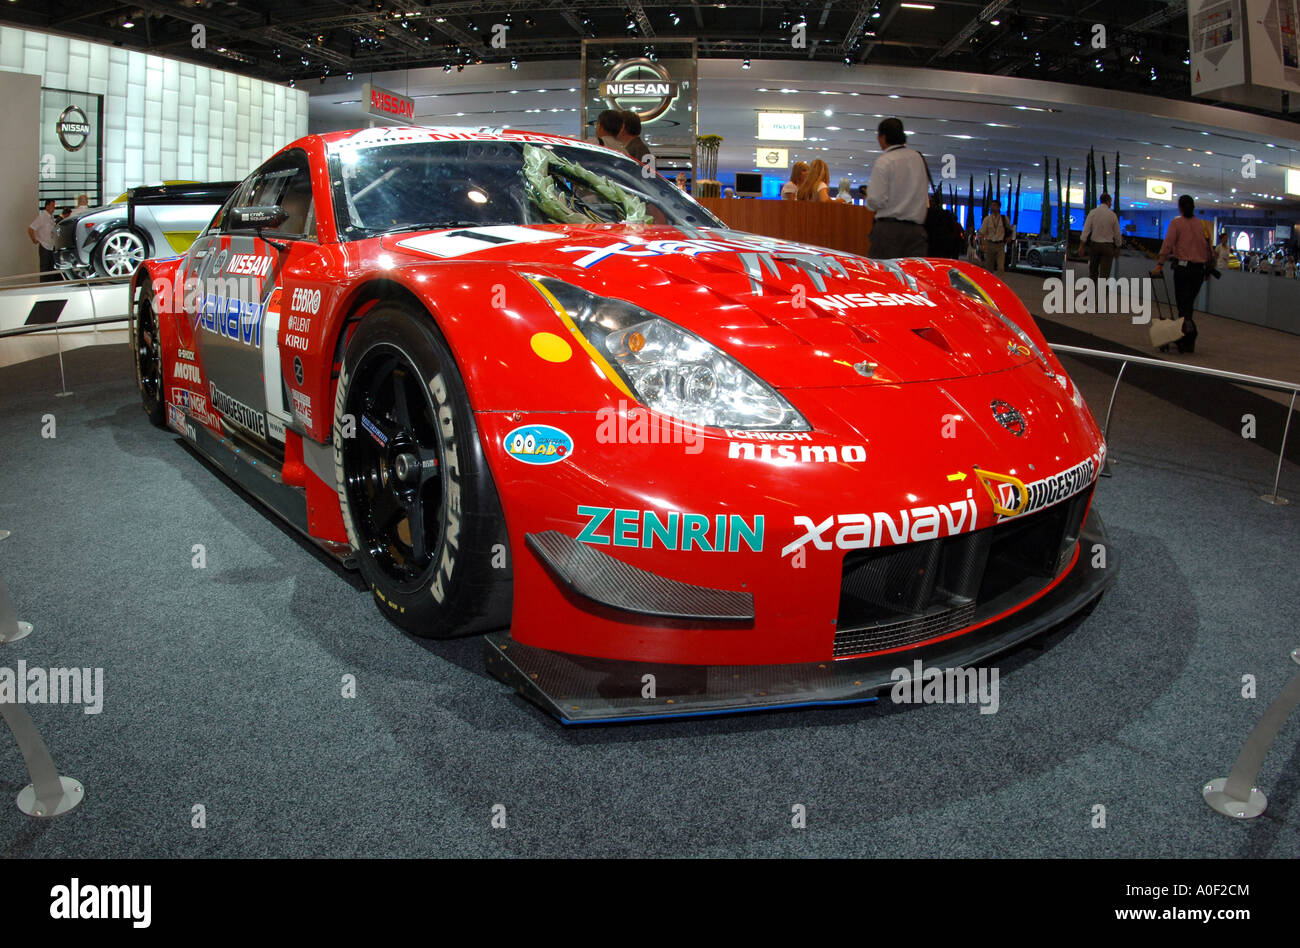 350z Stock Photos & 350z Stock Images - Alamy